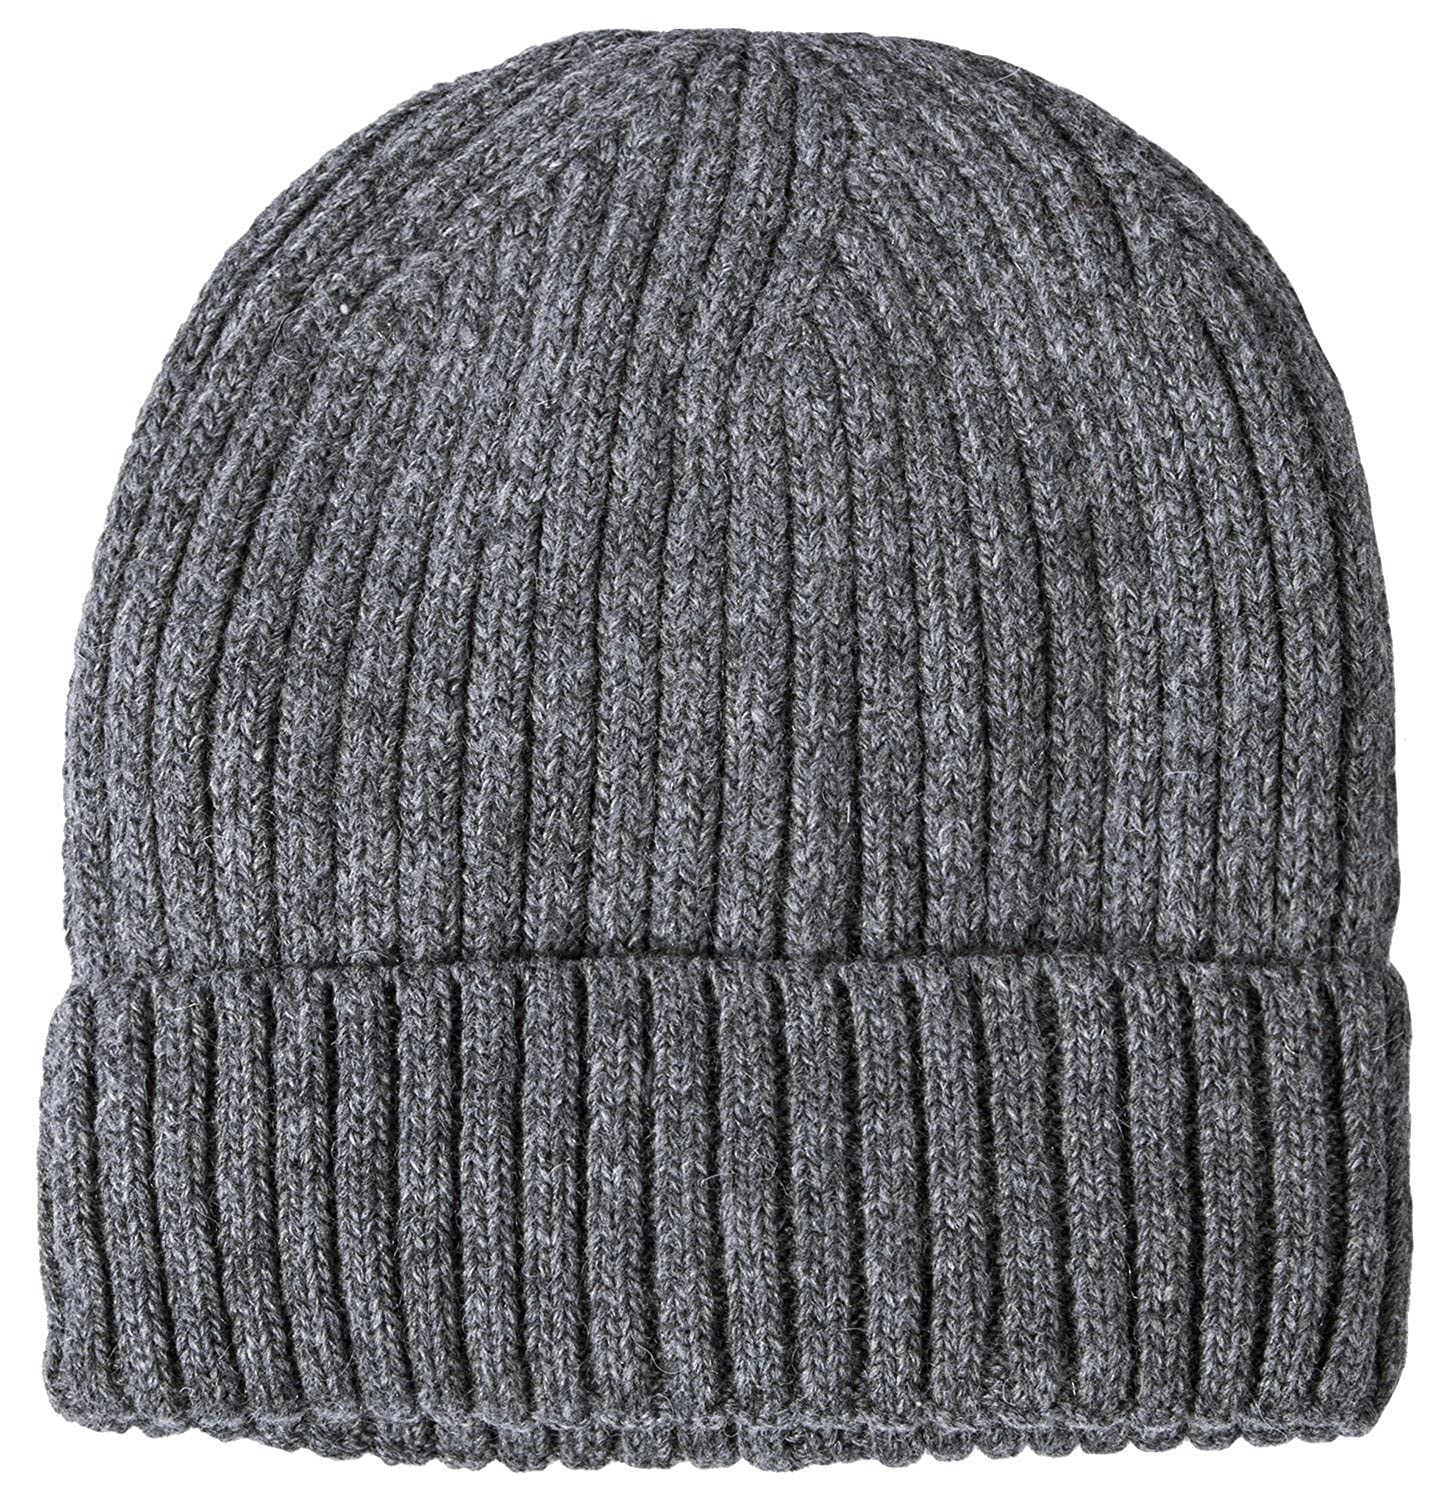 ab98ea5d Oryer Mens Winter Hats Wool Knit Slouchy Beanie Warm Hat Baggy Skull Cap at  Amazon Men's Clothing store: